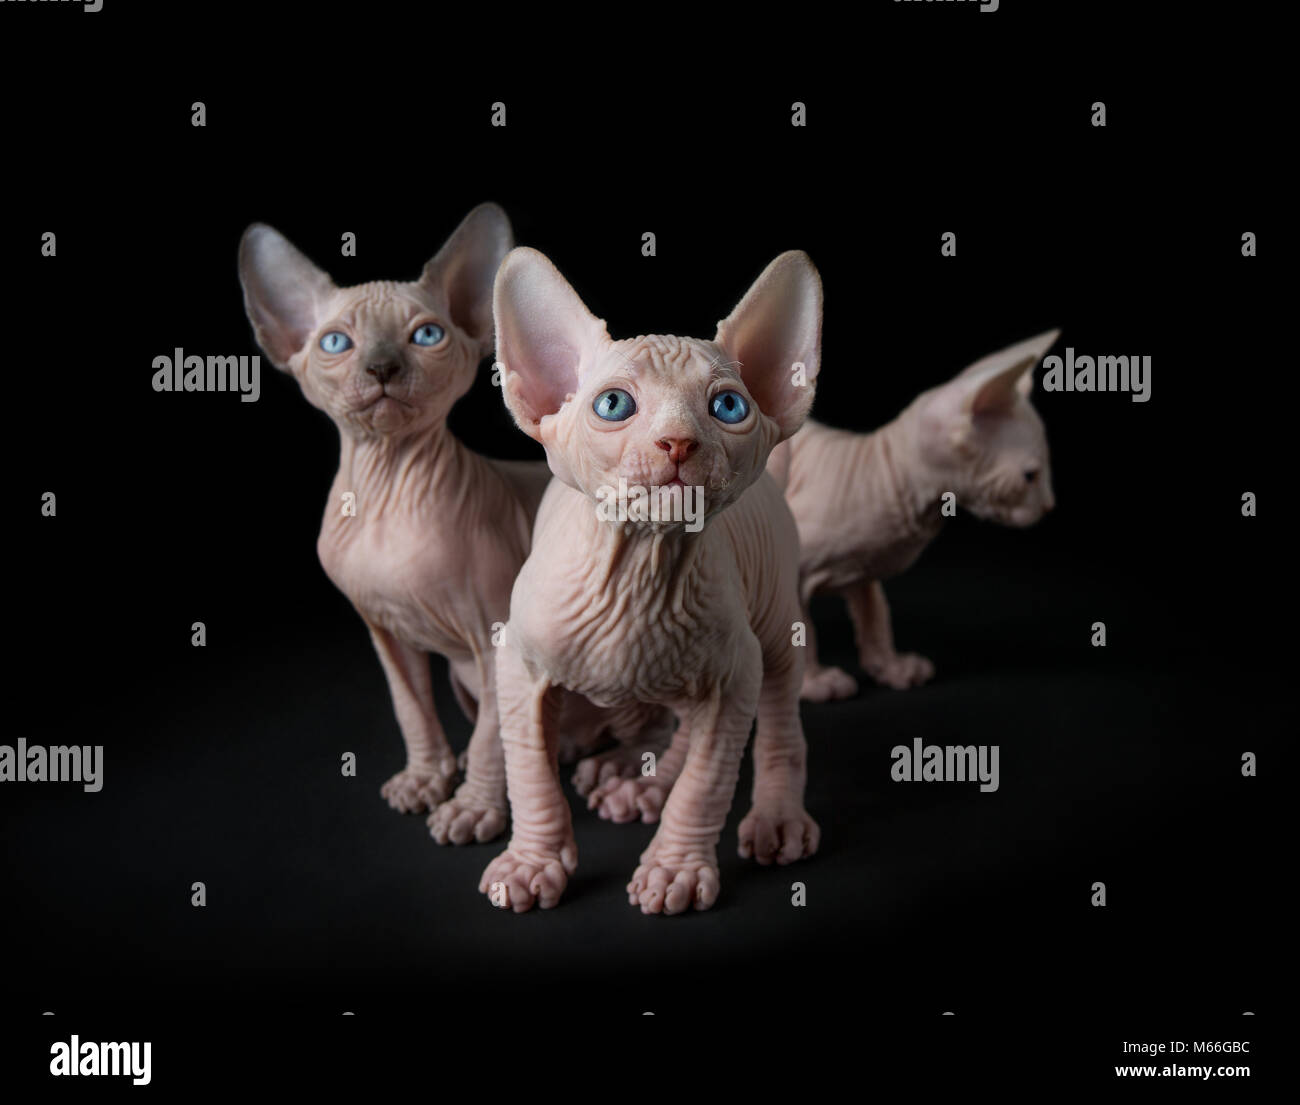 Three sphynx kittens - Stock Image